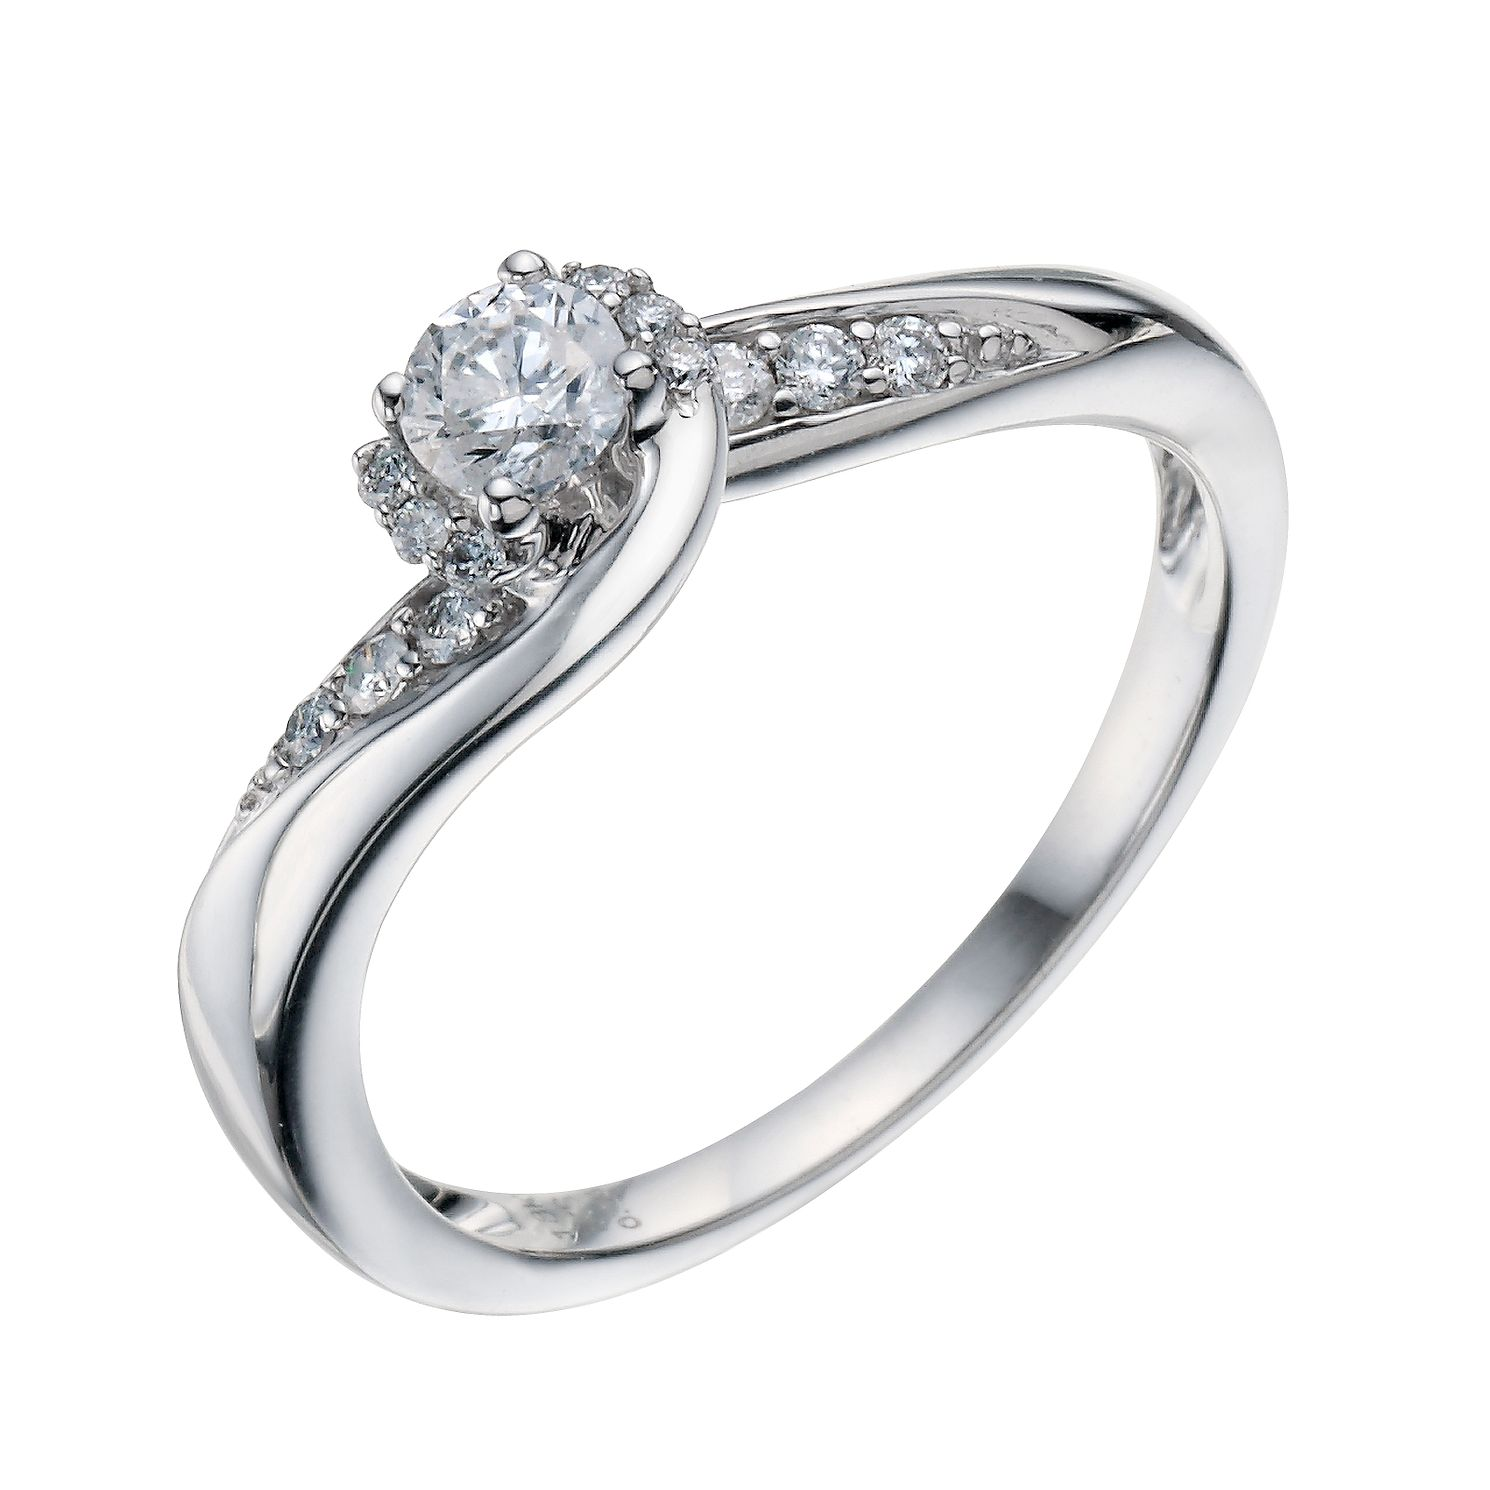 solitaire wedding vs jewelers comparison n engagement rings ring lee halo raymond